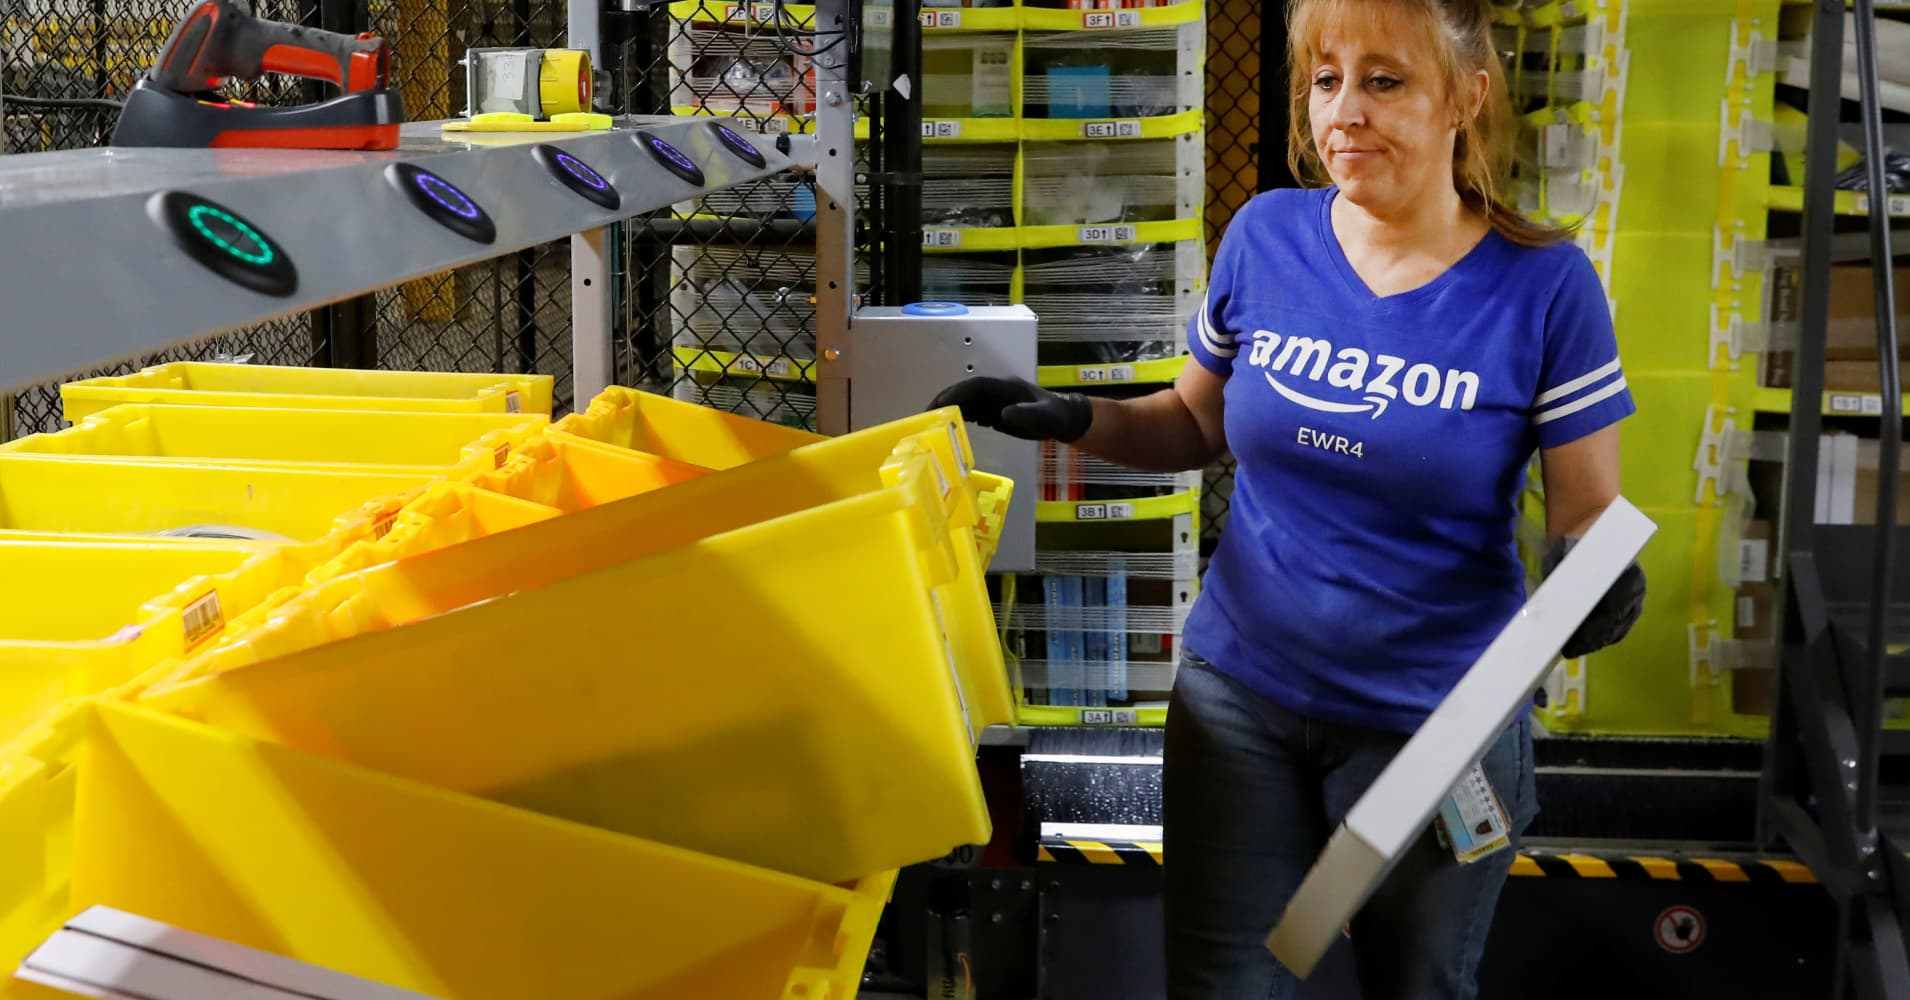 Amazon will start penalizing sellers who ship unsafe packages to its warehouses as violations mount - CNBC thumbnail